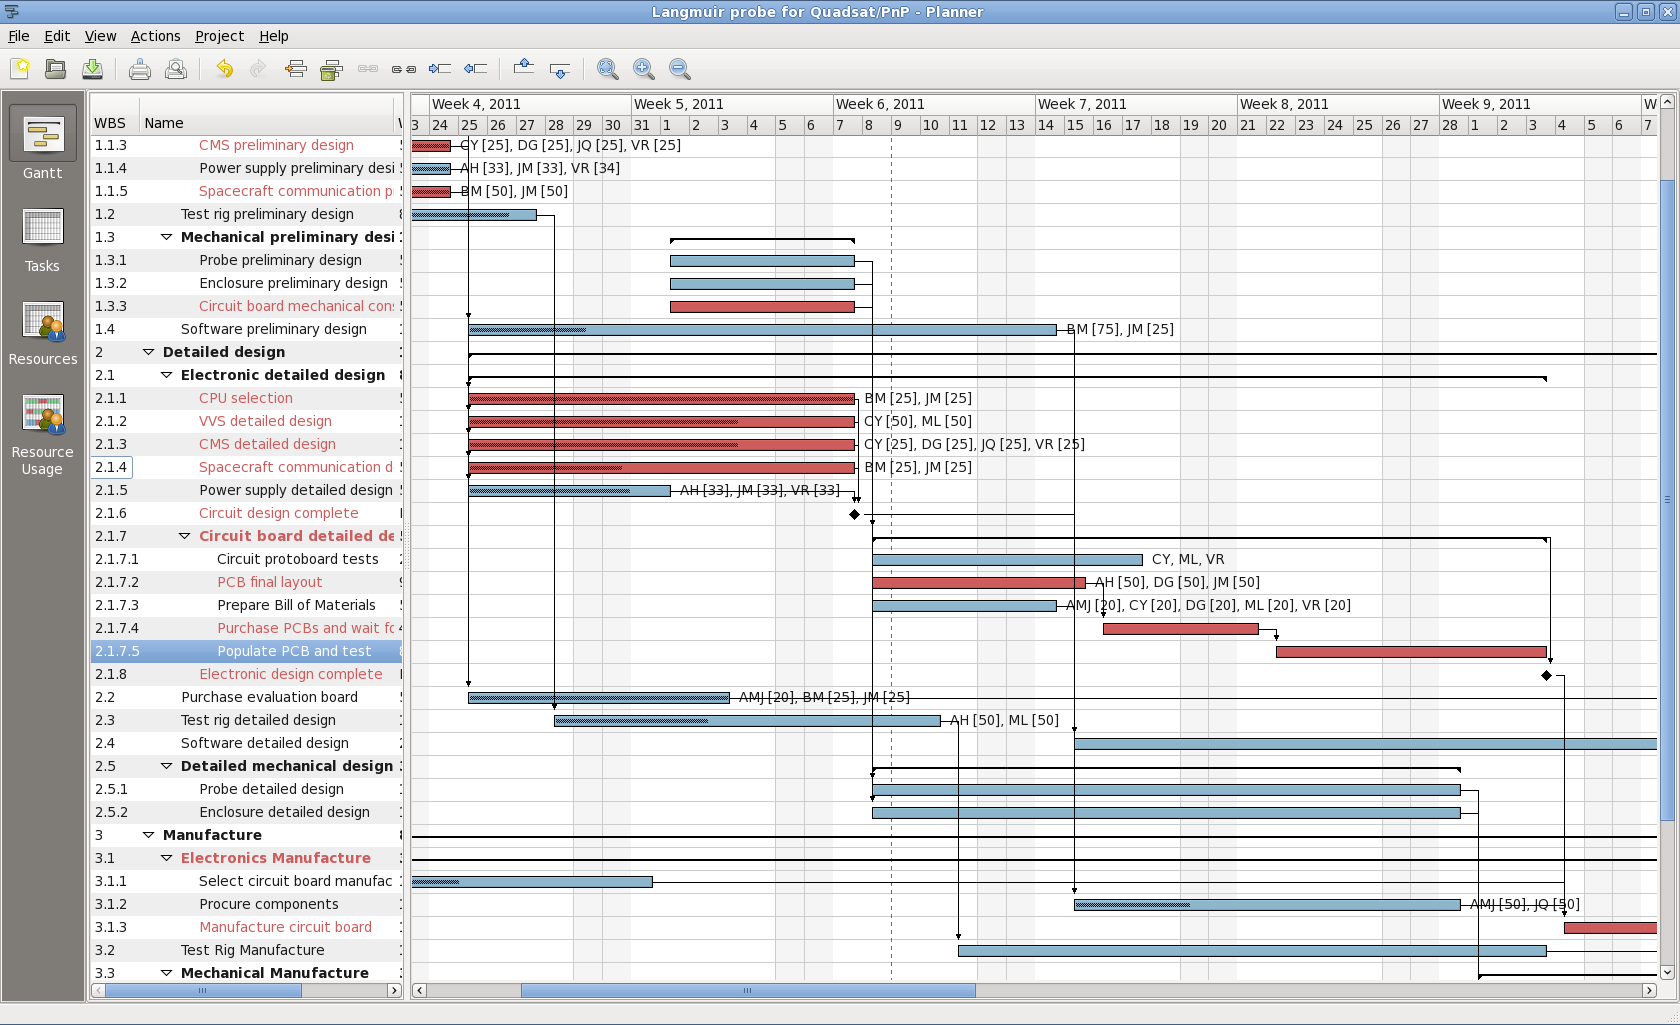 STEP-BY-STEP TUTORIAL FOR MAKING A GANTT CHART IN EXCEL